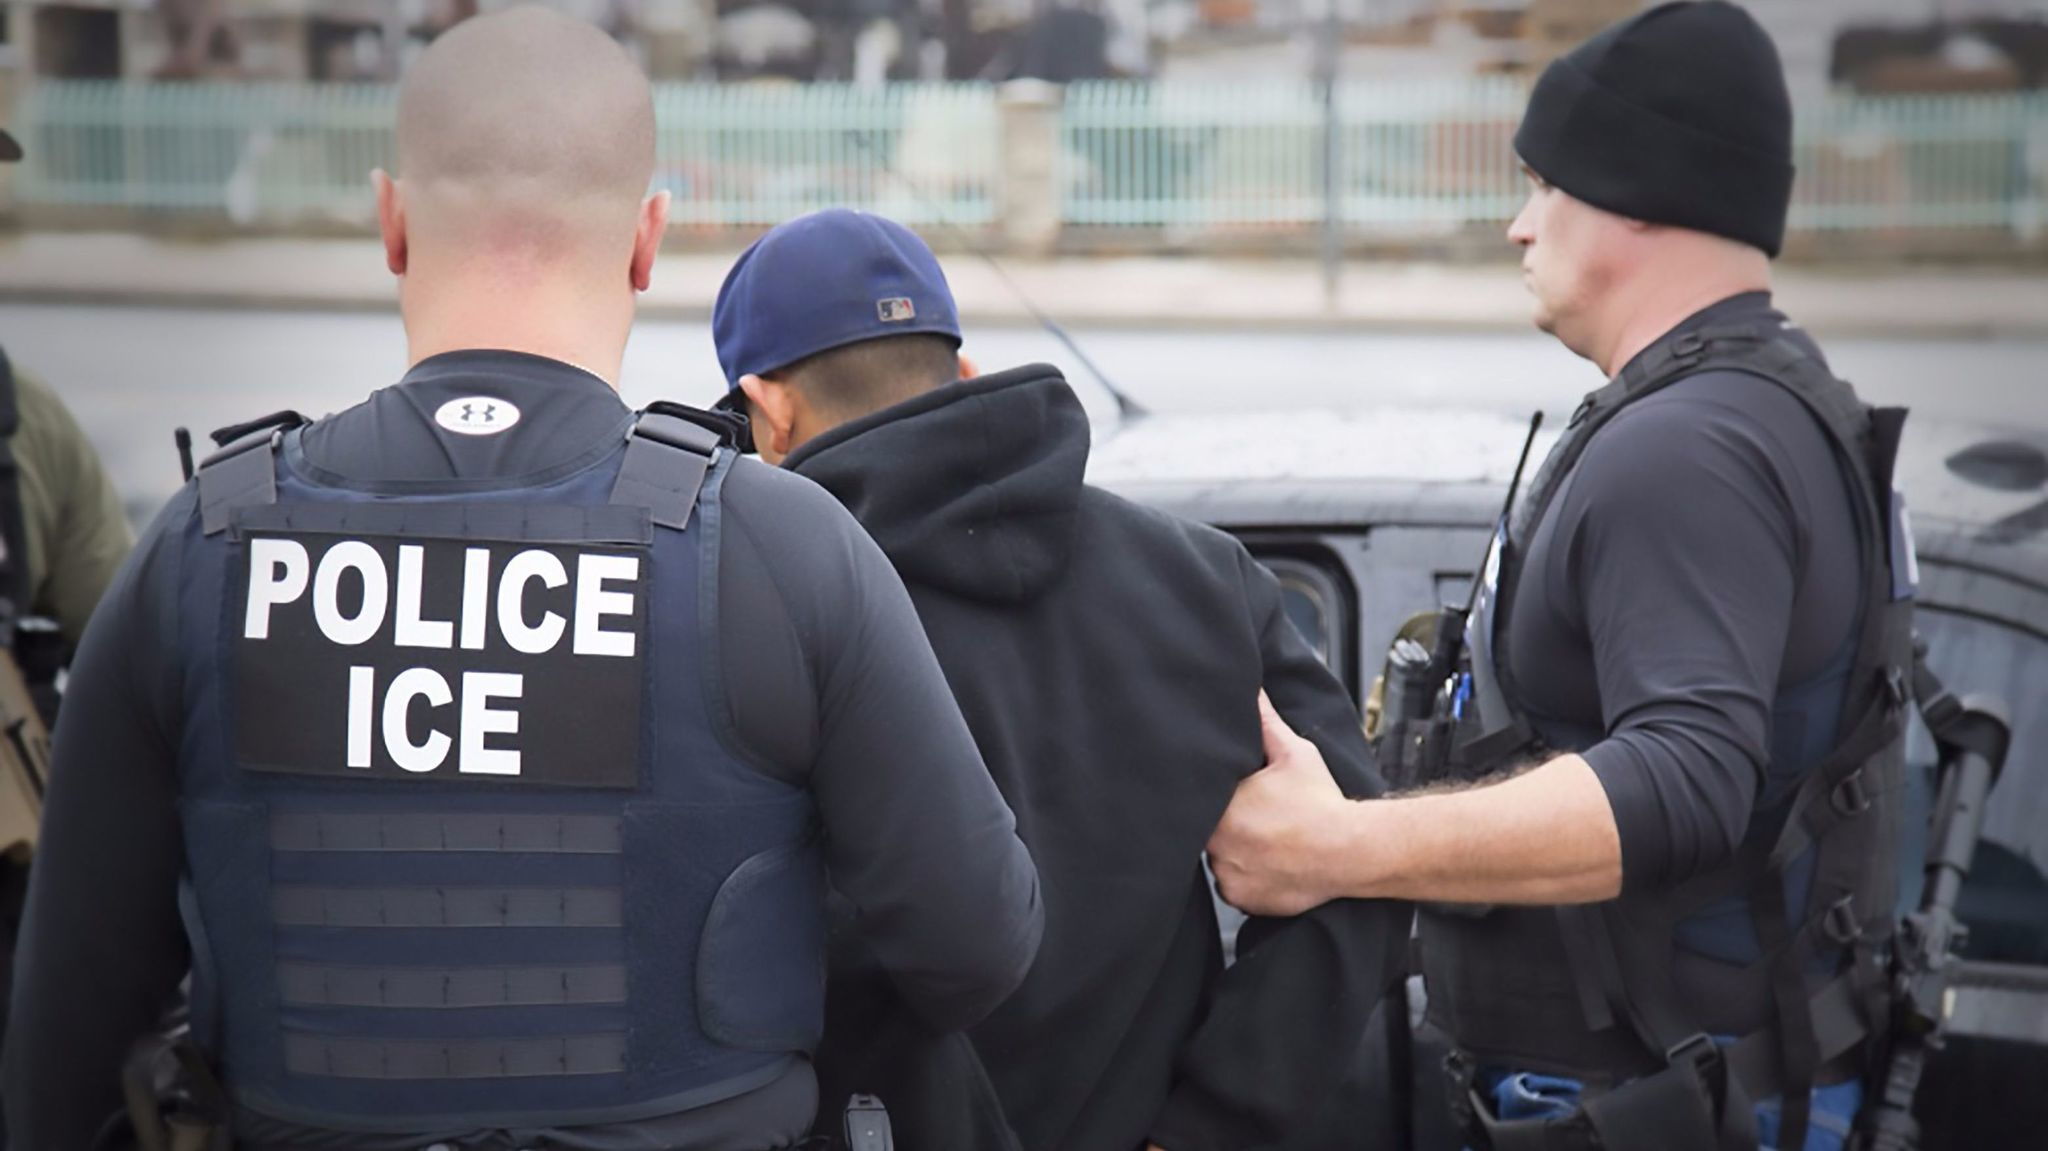 U.S. Immigration and Customs Enforcement officers detain a suspect during an enforcement operation in February 2017 in Los Angeles.